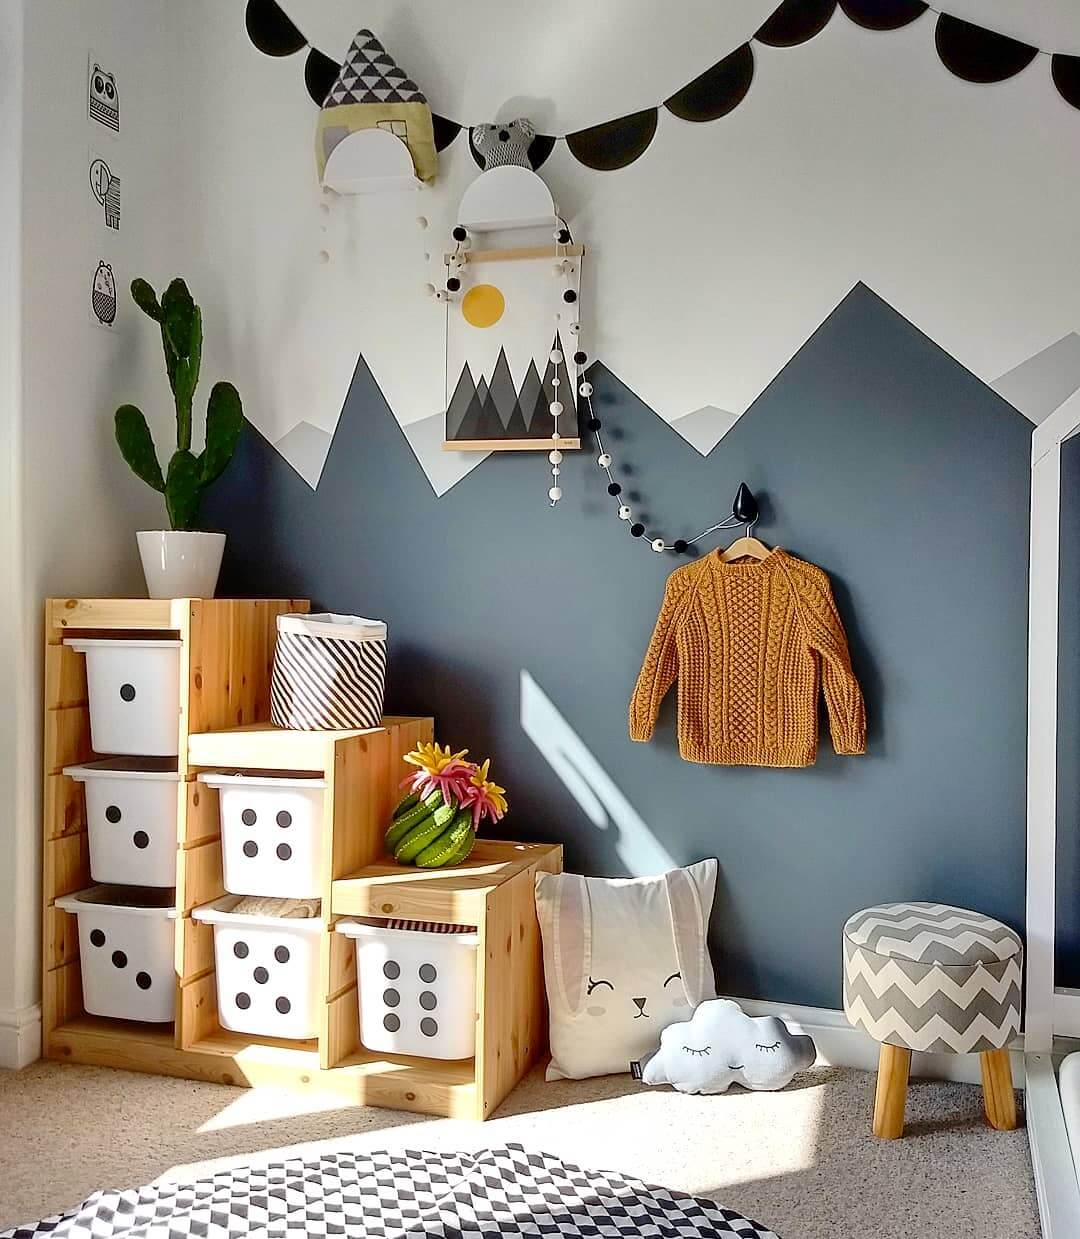 IKEA TROFAST HACKS - trofast unit placed in a childs room against a feature blue scandi painted wall.